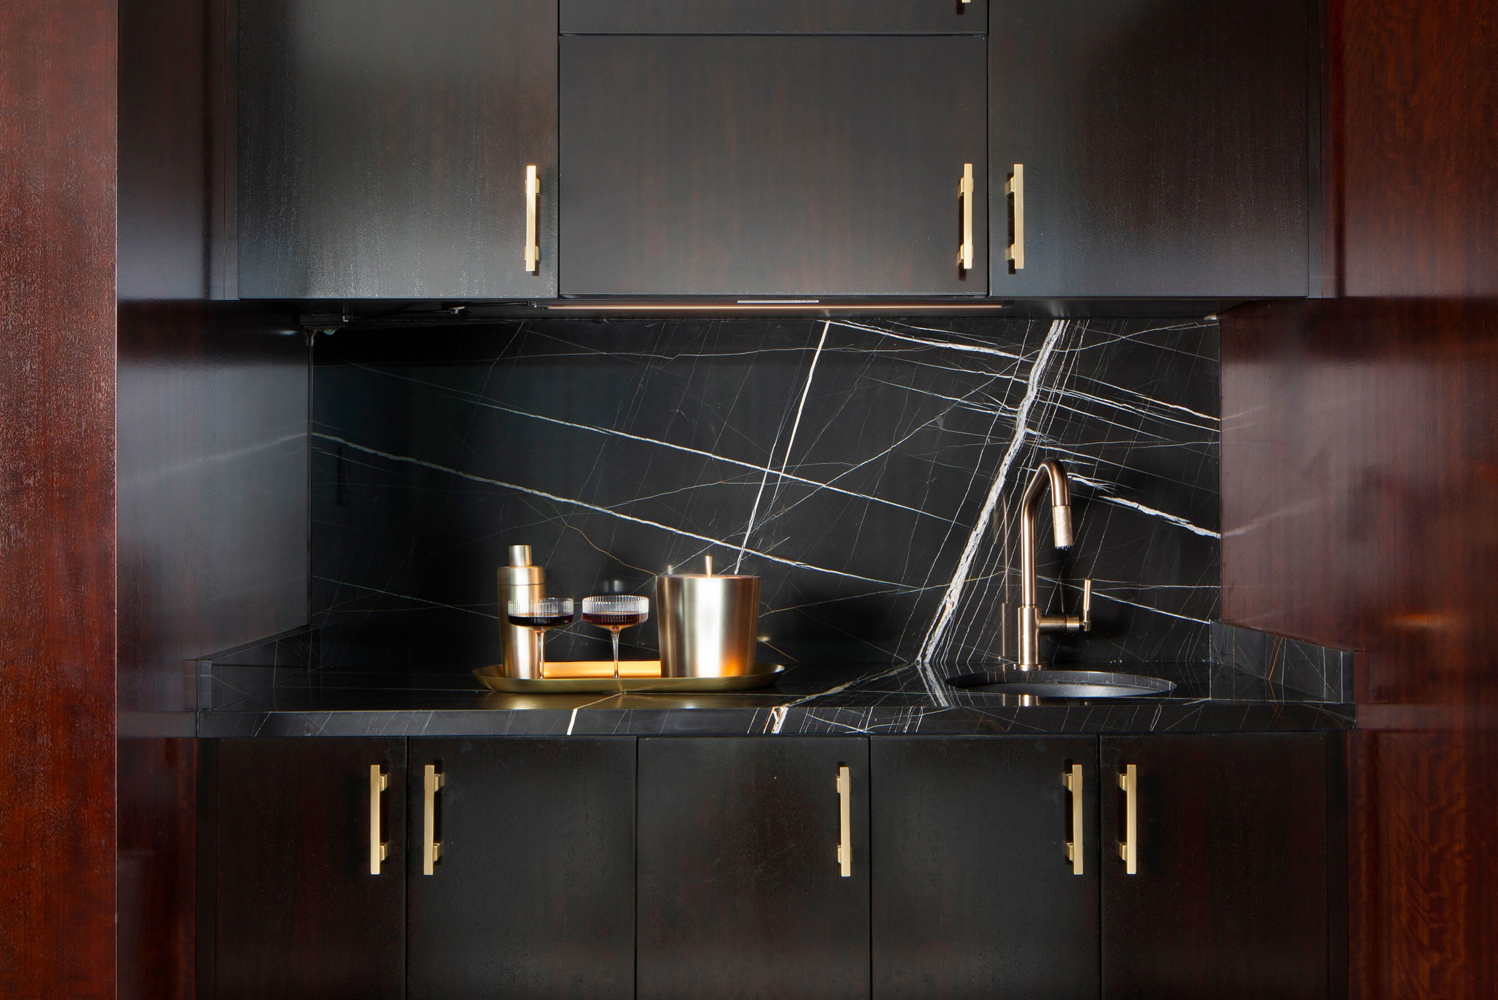 Details that highlight the suite's residential inspiration include a Nero Marquina marble countertop and fireplace.